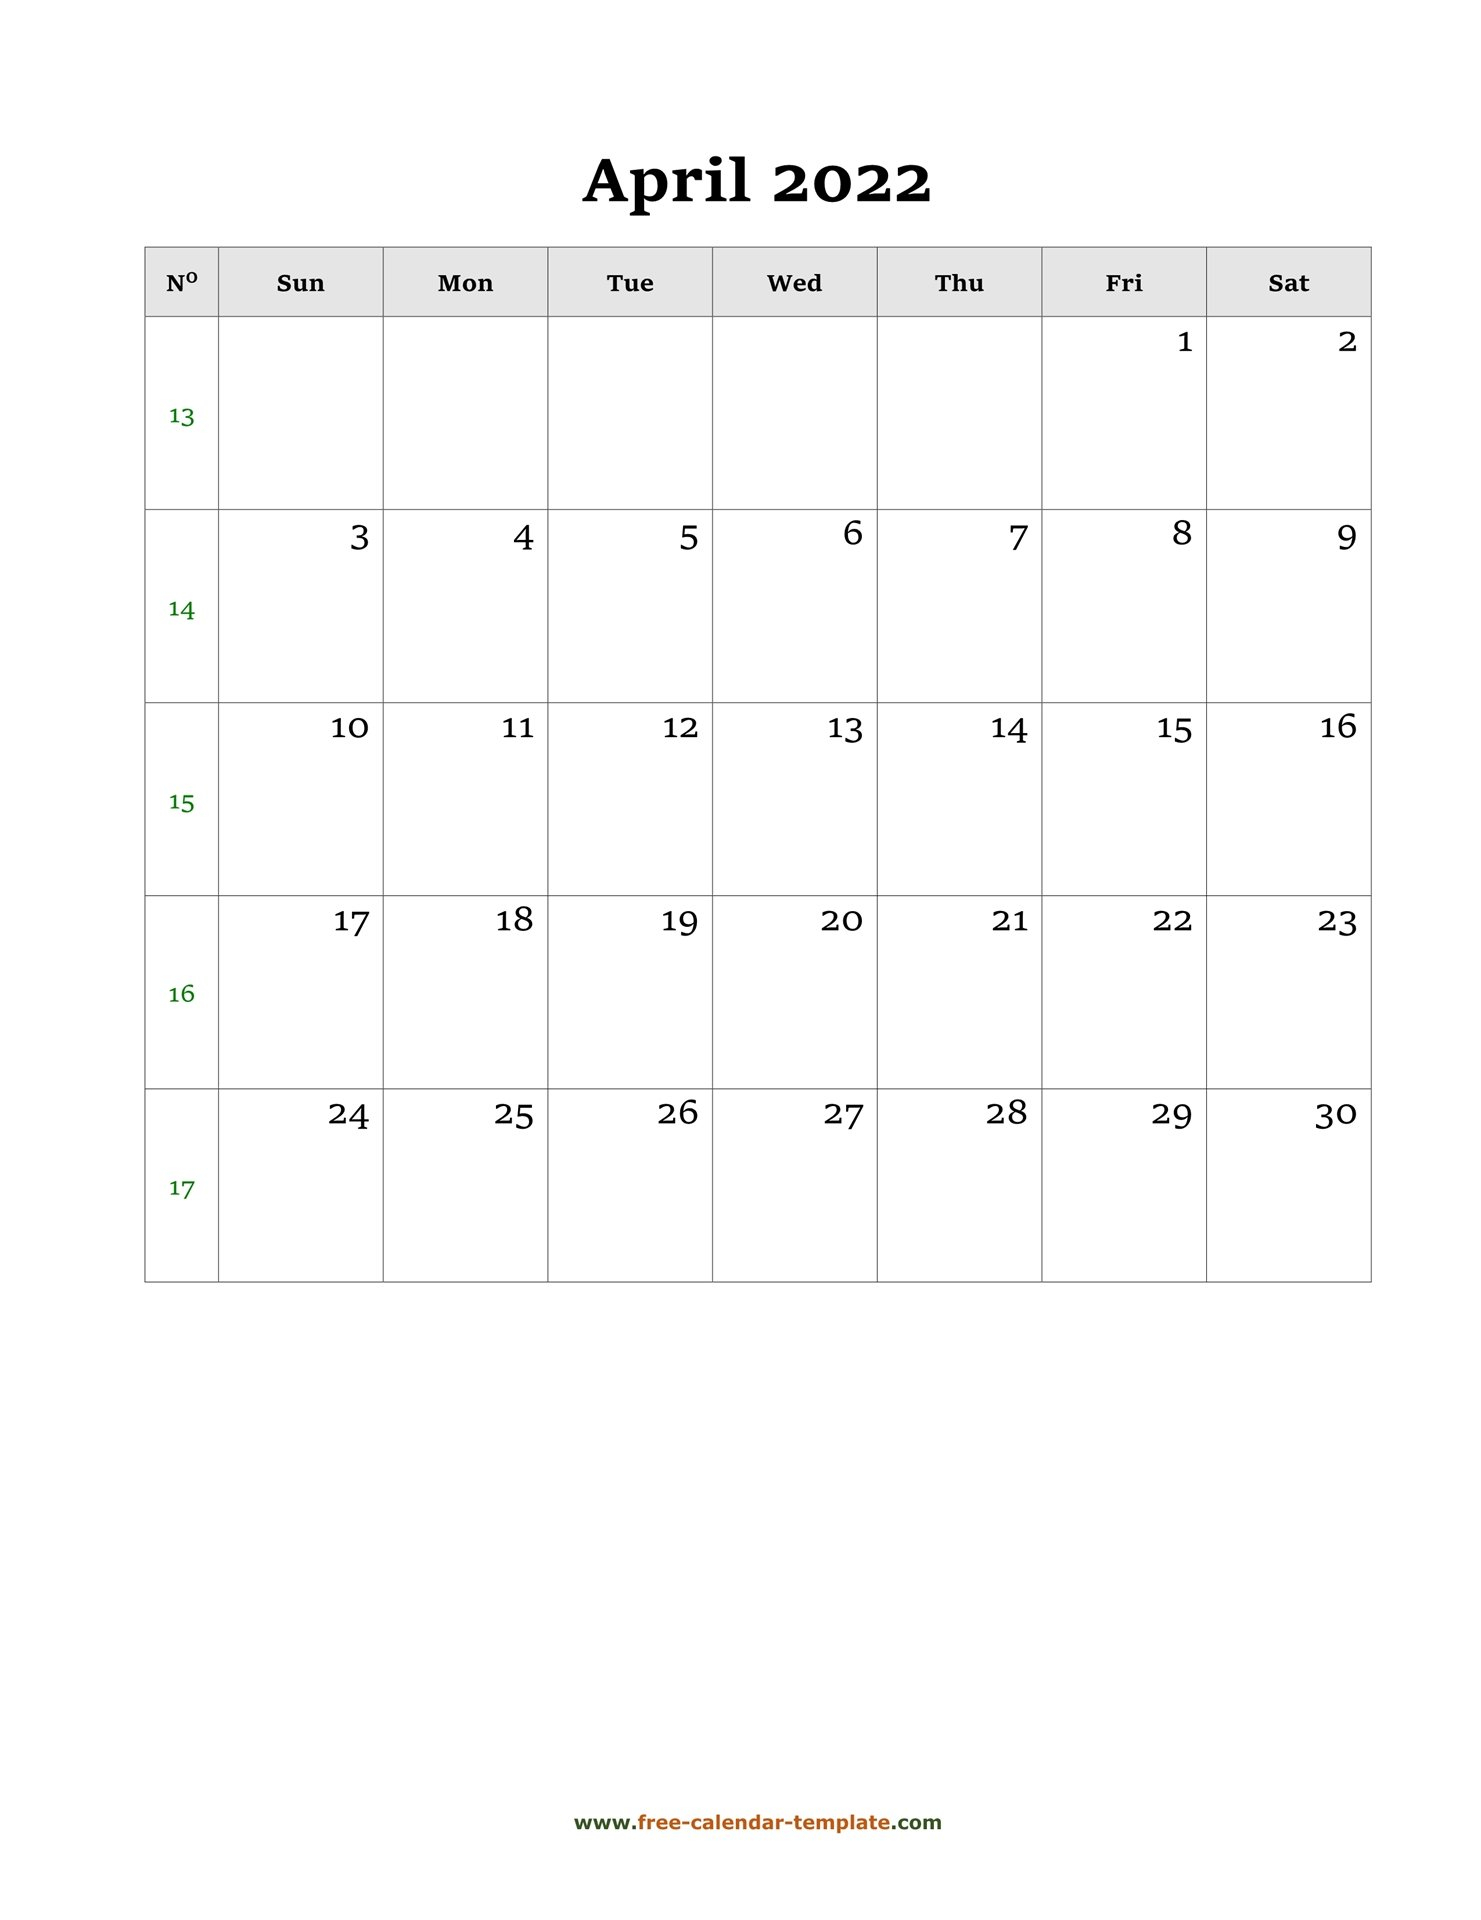 April Calendar 2022 Simple Design With Large Box On Each intended for April Monthly Calendar 2022 Free Printable